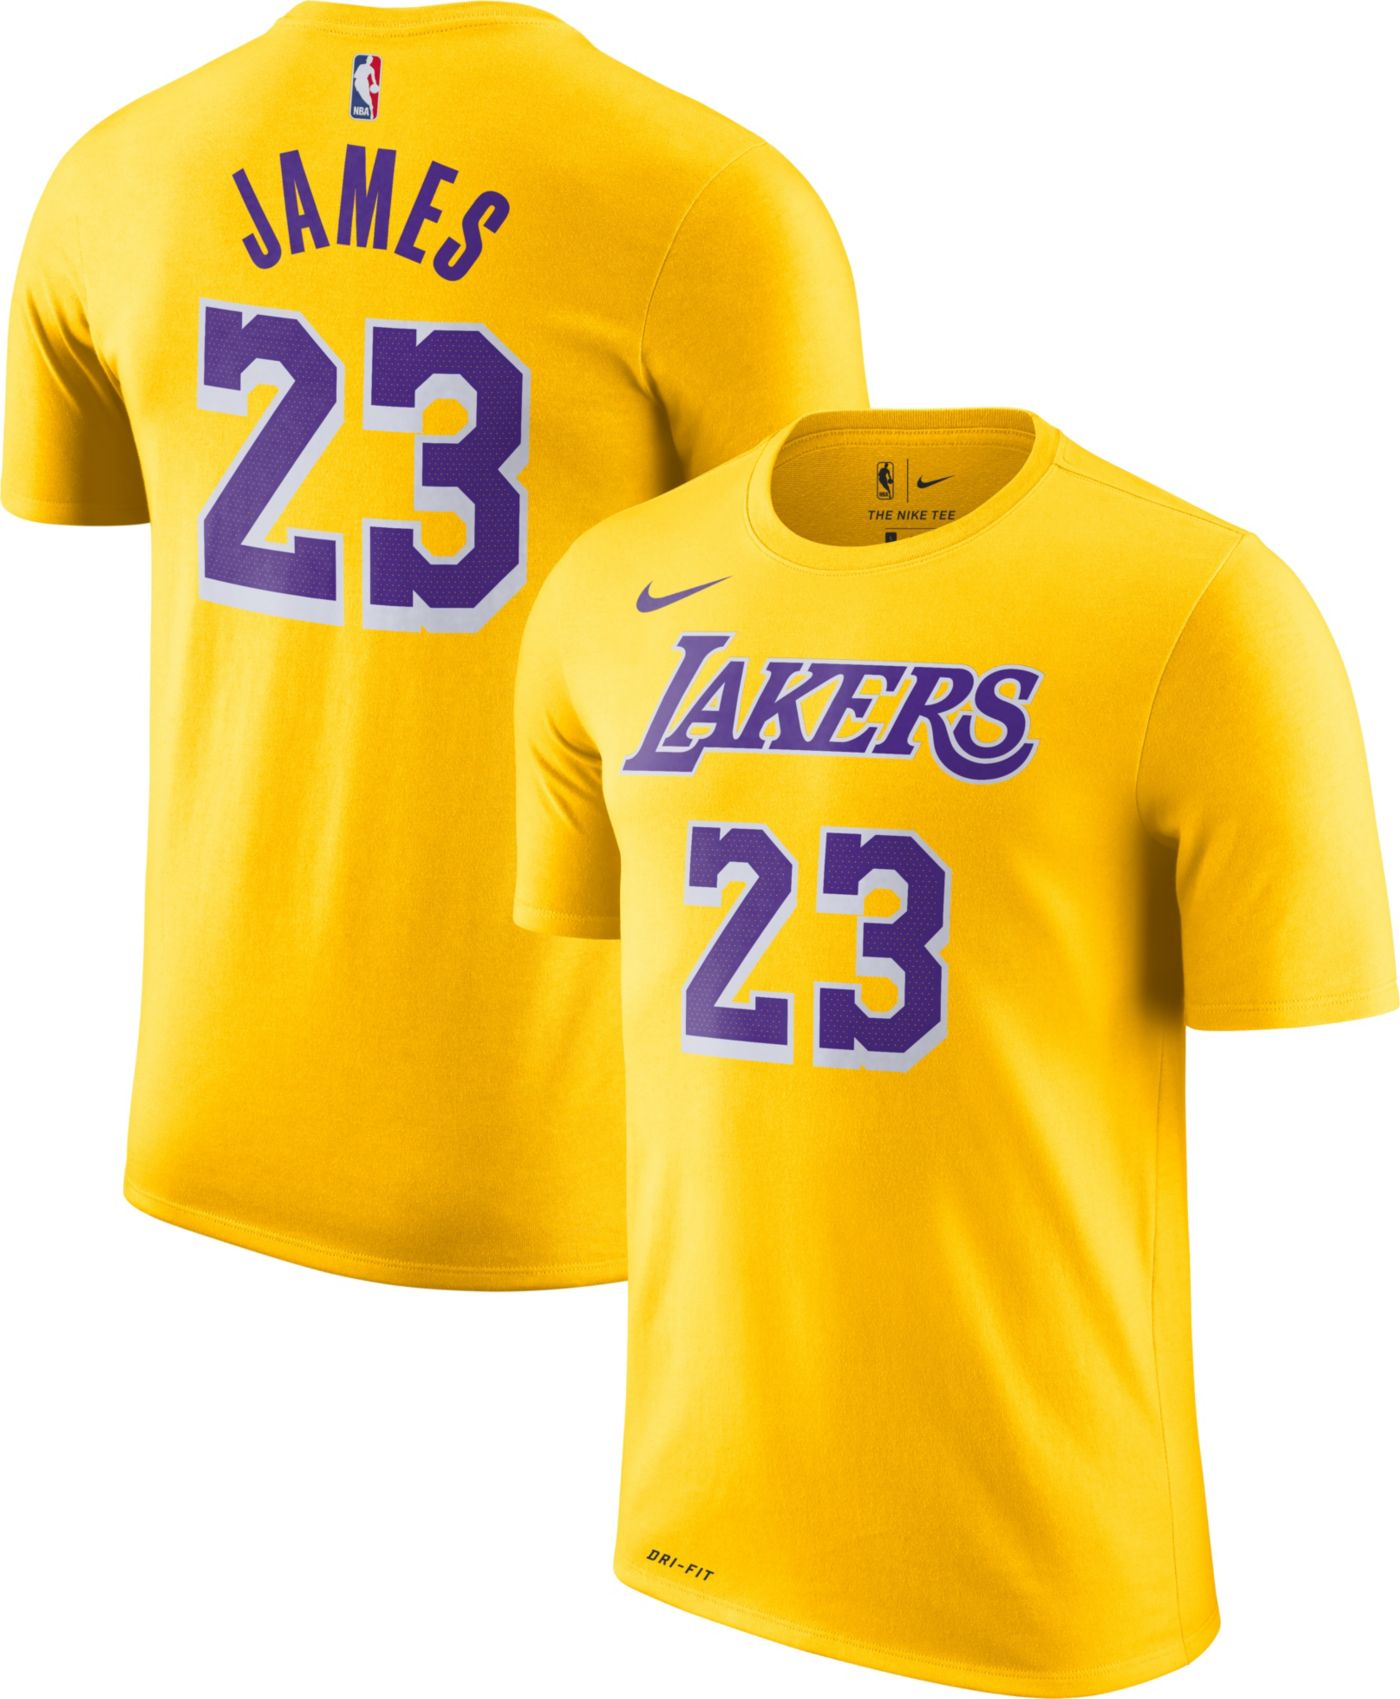 Nike Youth Los Angeles Lakers LeBron James Dri-FIT Gold T-Shirt